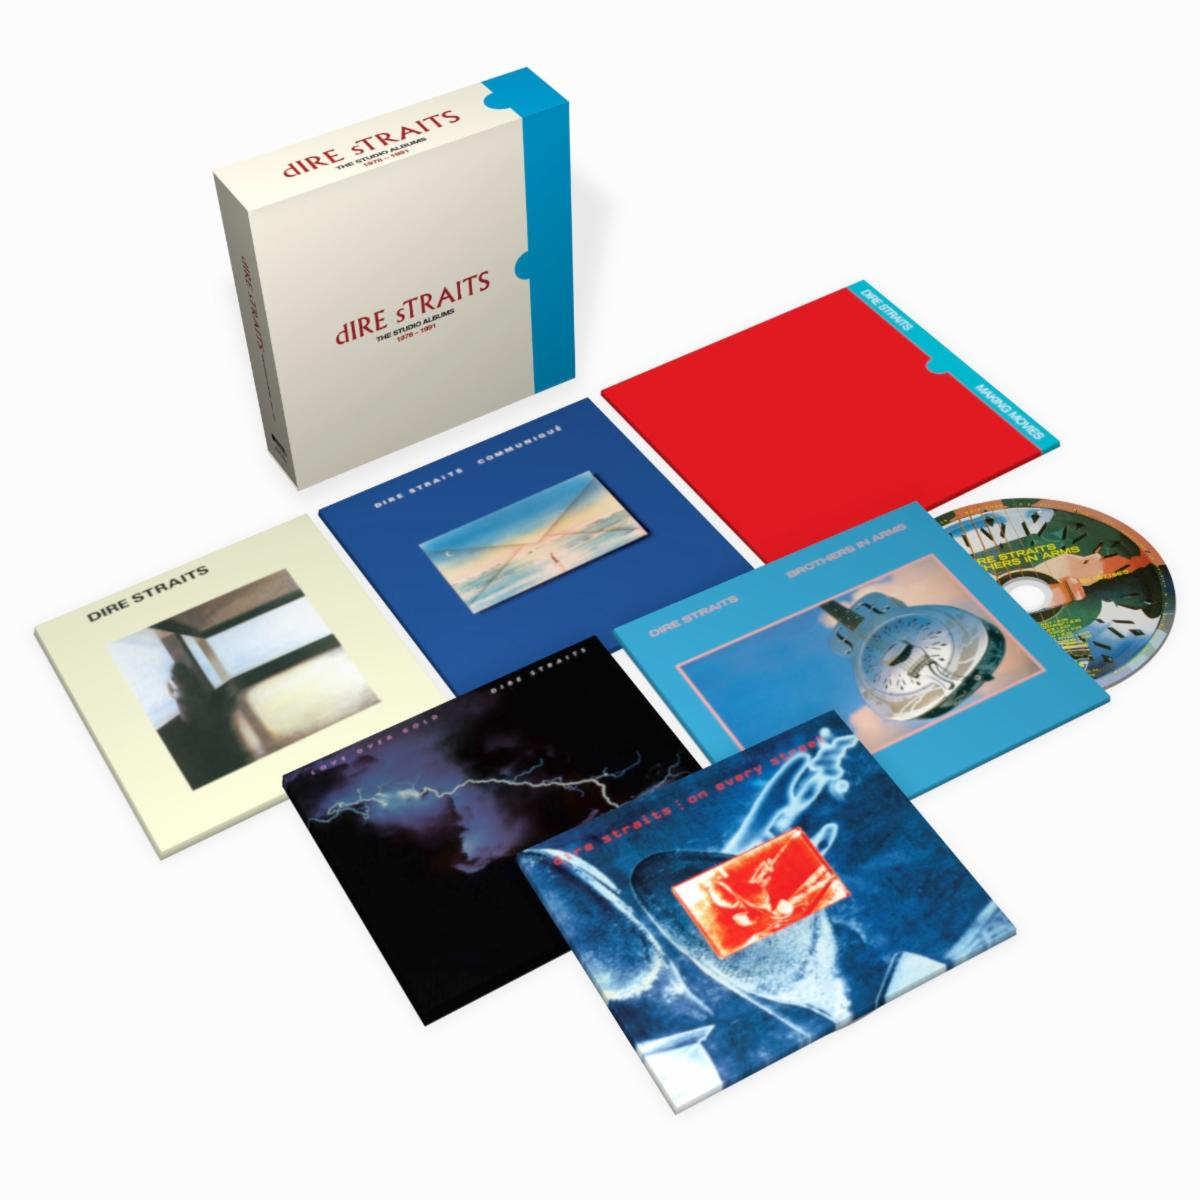 Dire Straits Box Set